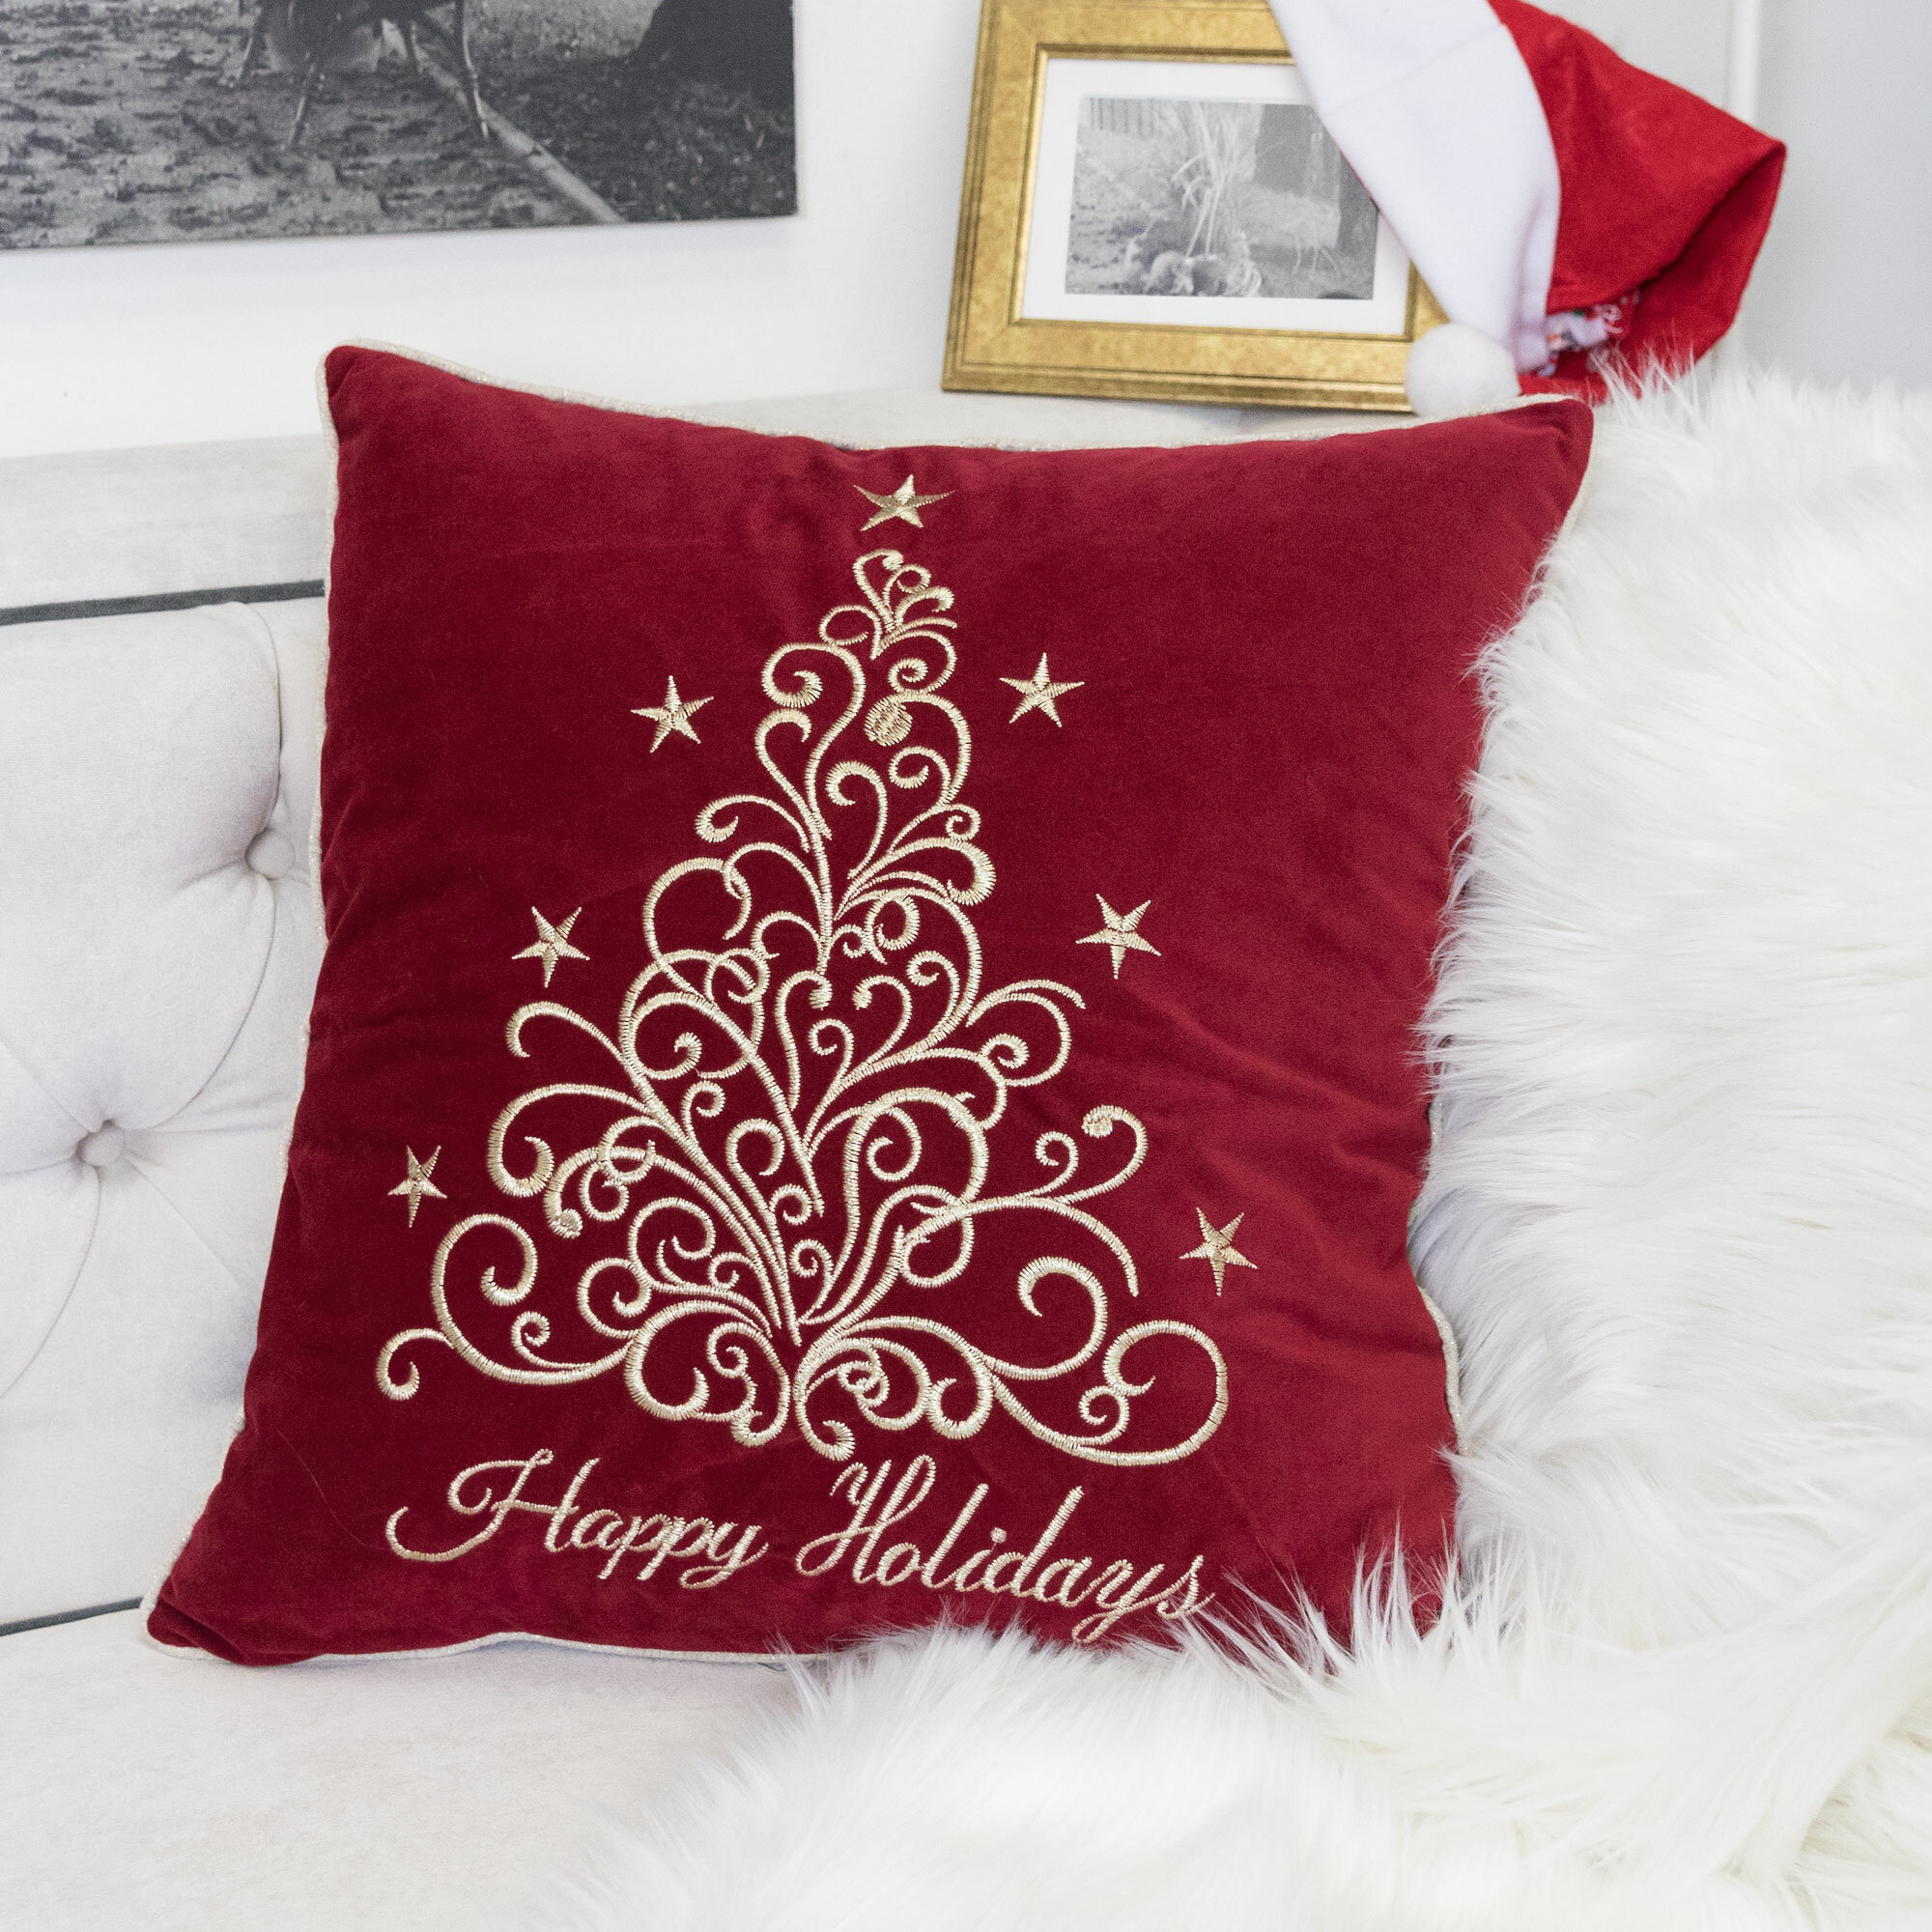 The Holiday Aisle Holidays Fancy Embroidered Velvet Throw Pillow Reviews Wayfair